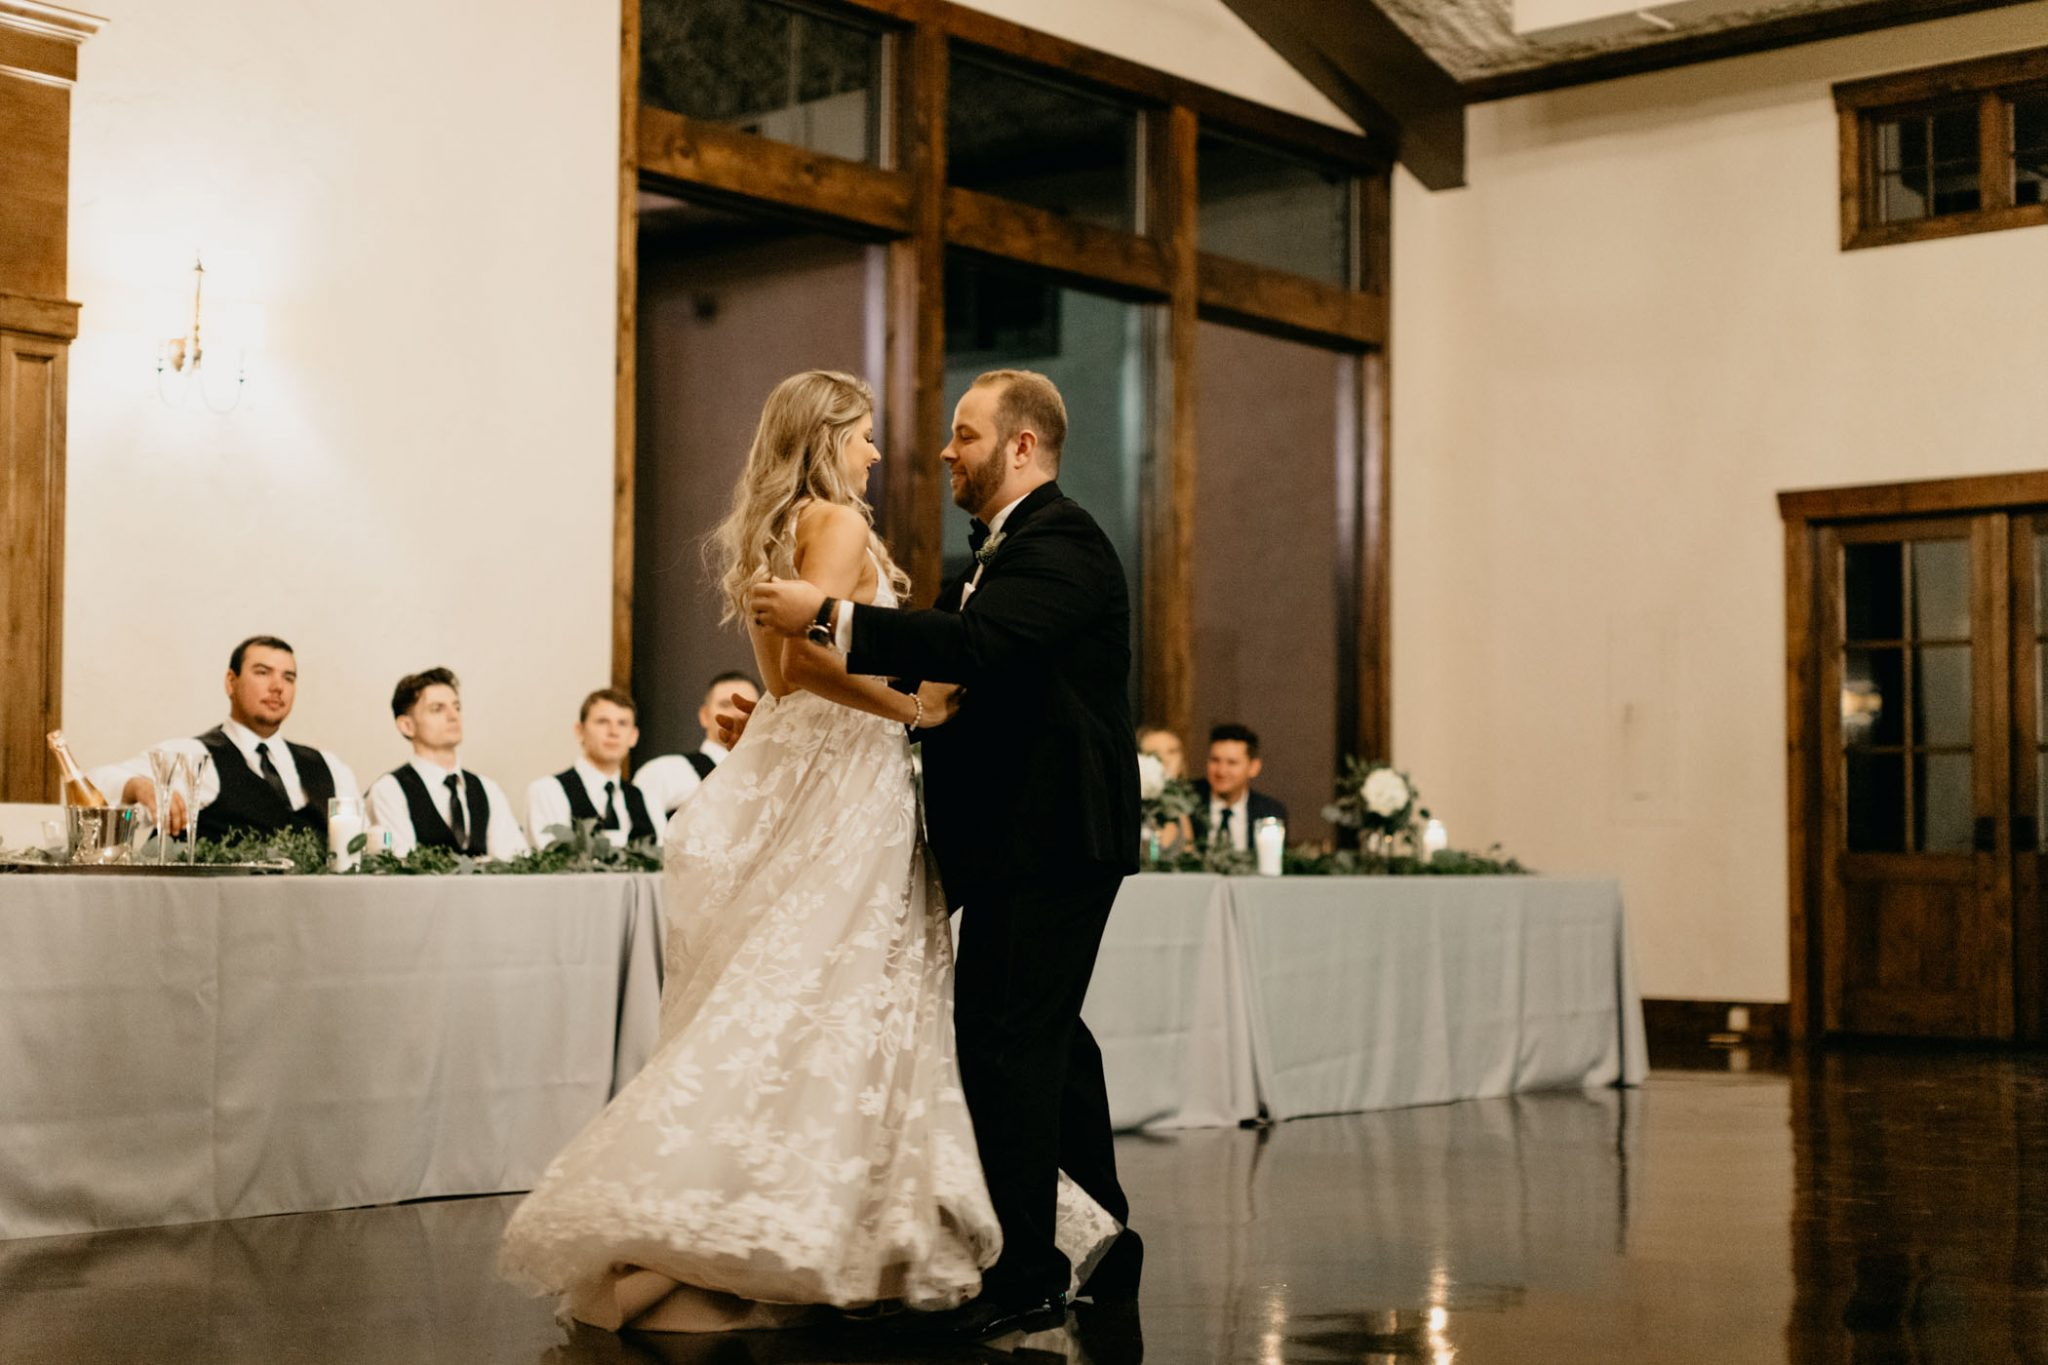 bride and groom sharing first dance at elegant wedding reception